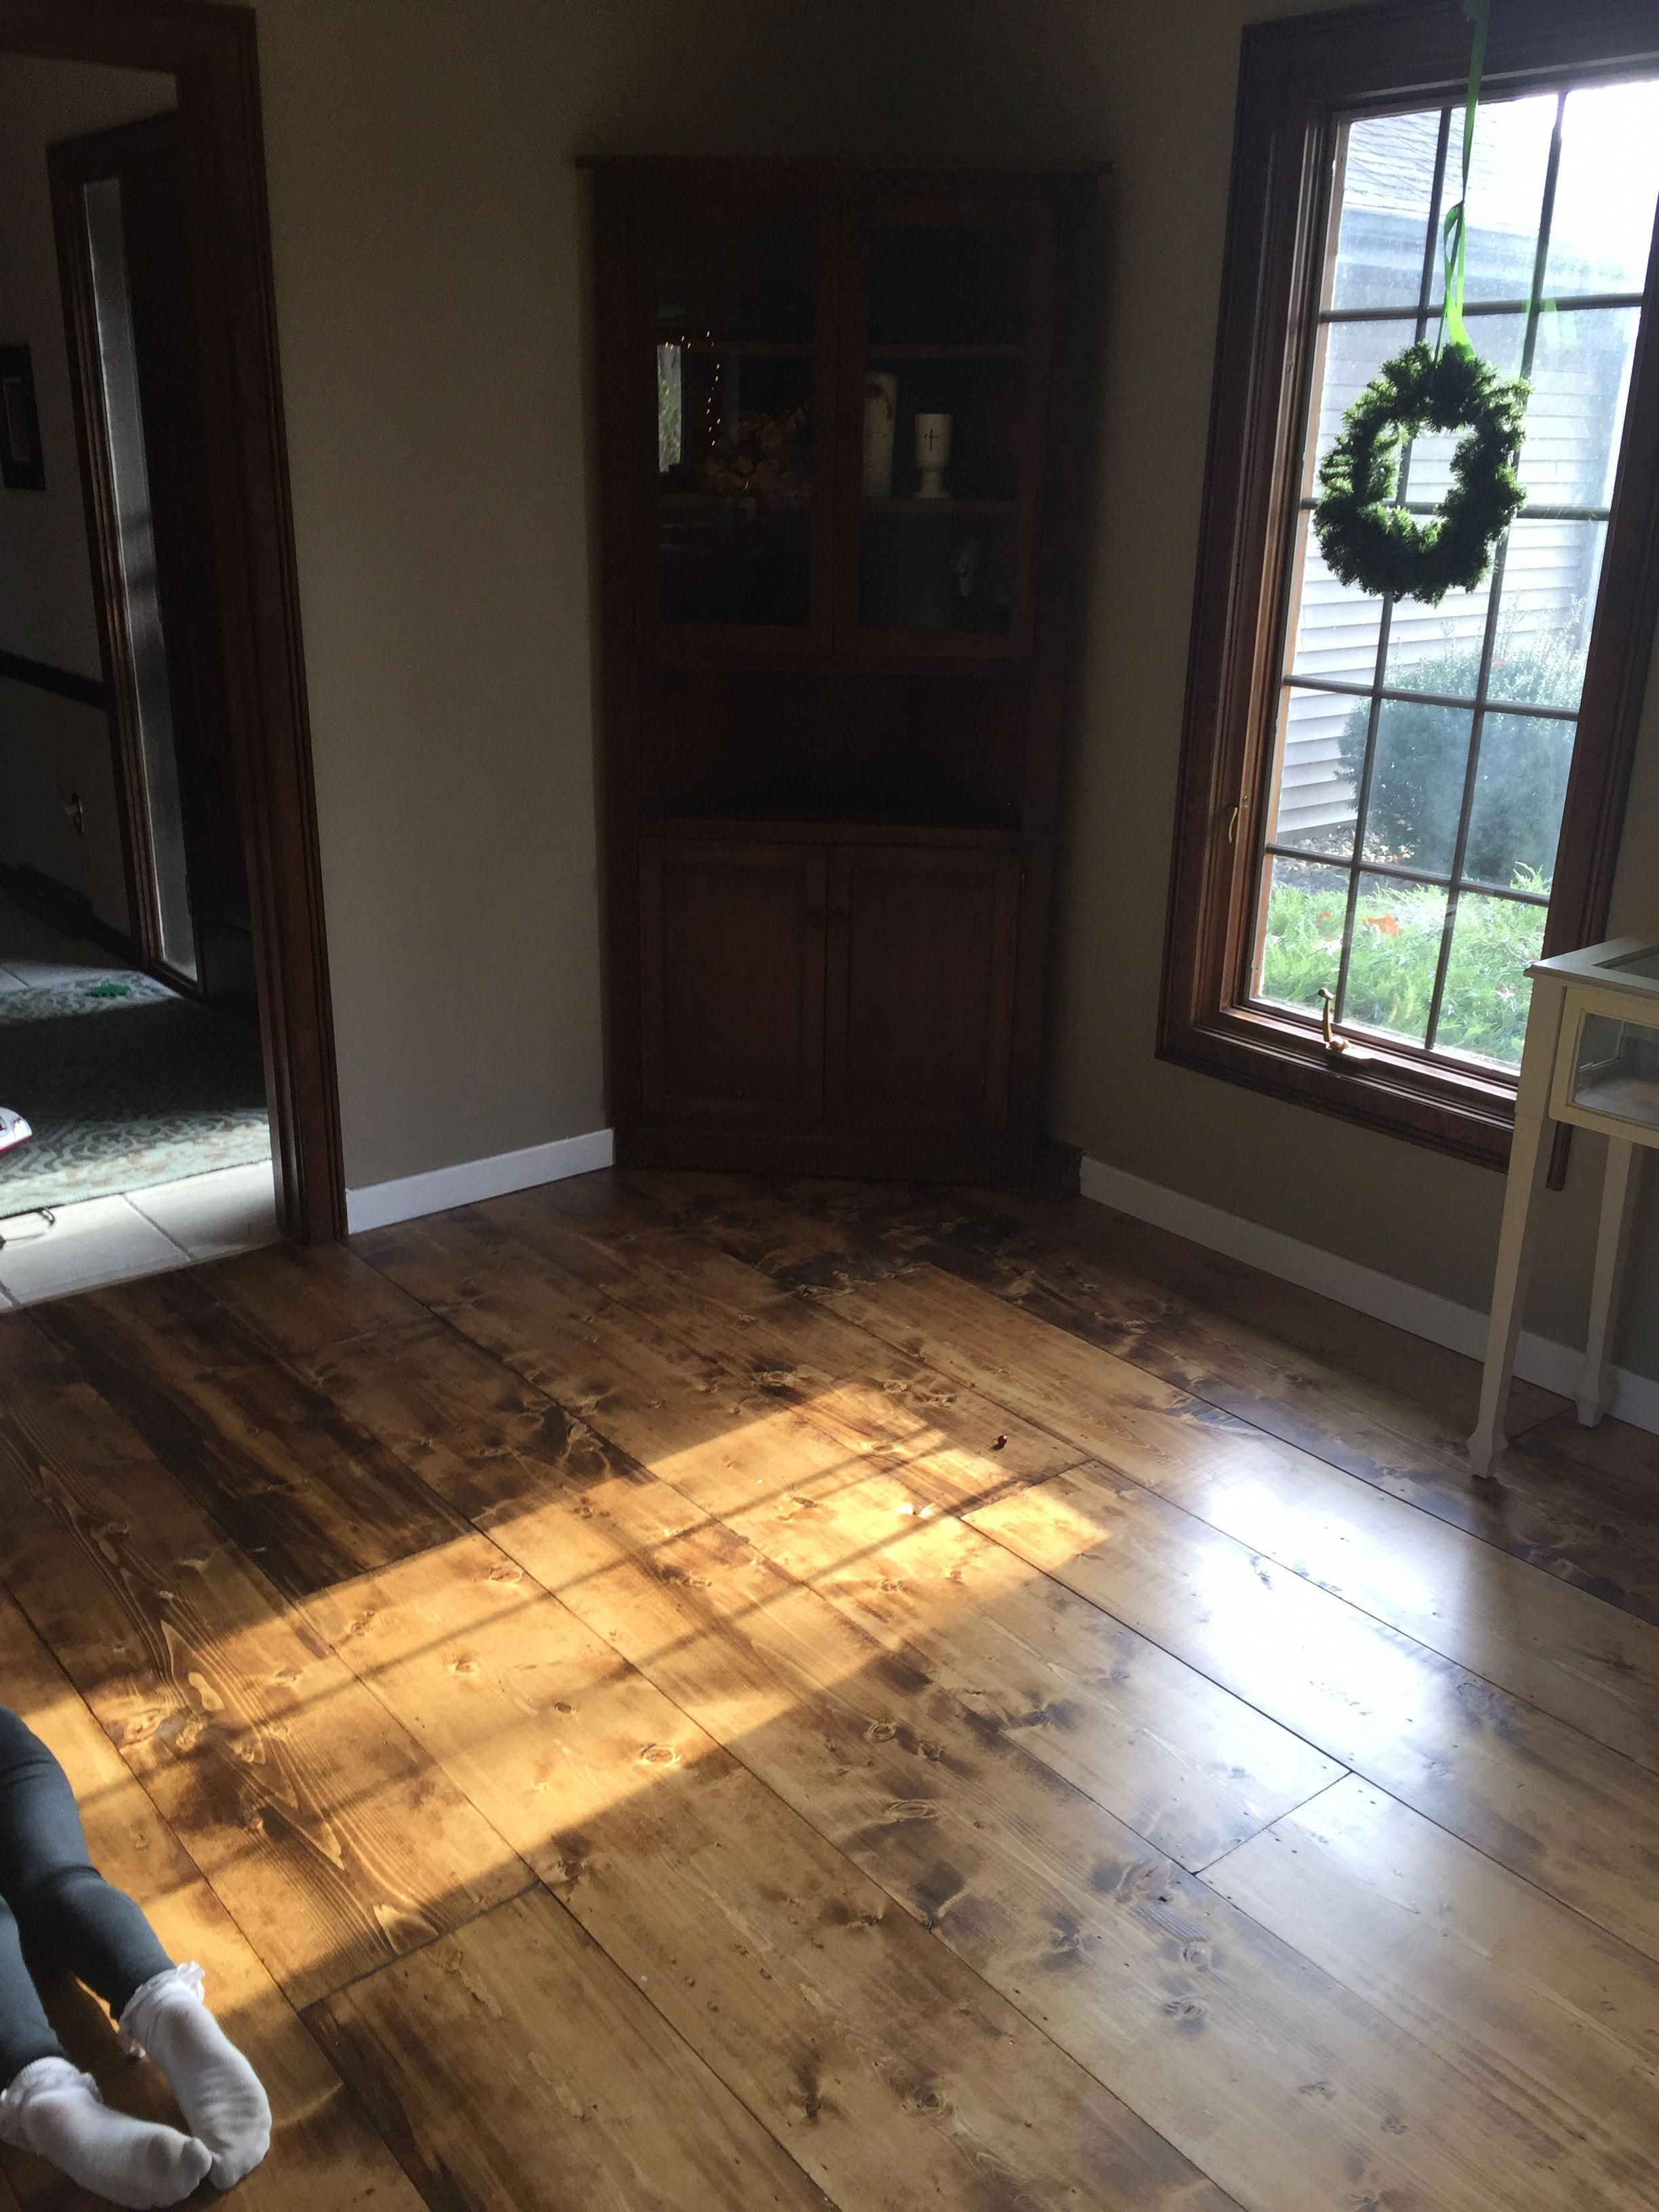 1 X12 Pine Board Flooring Woodflooringpine Pine Floors Flooring Wood Floors